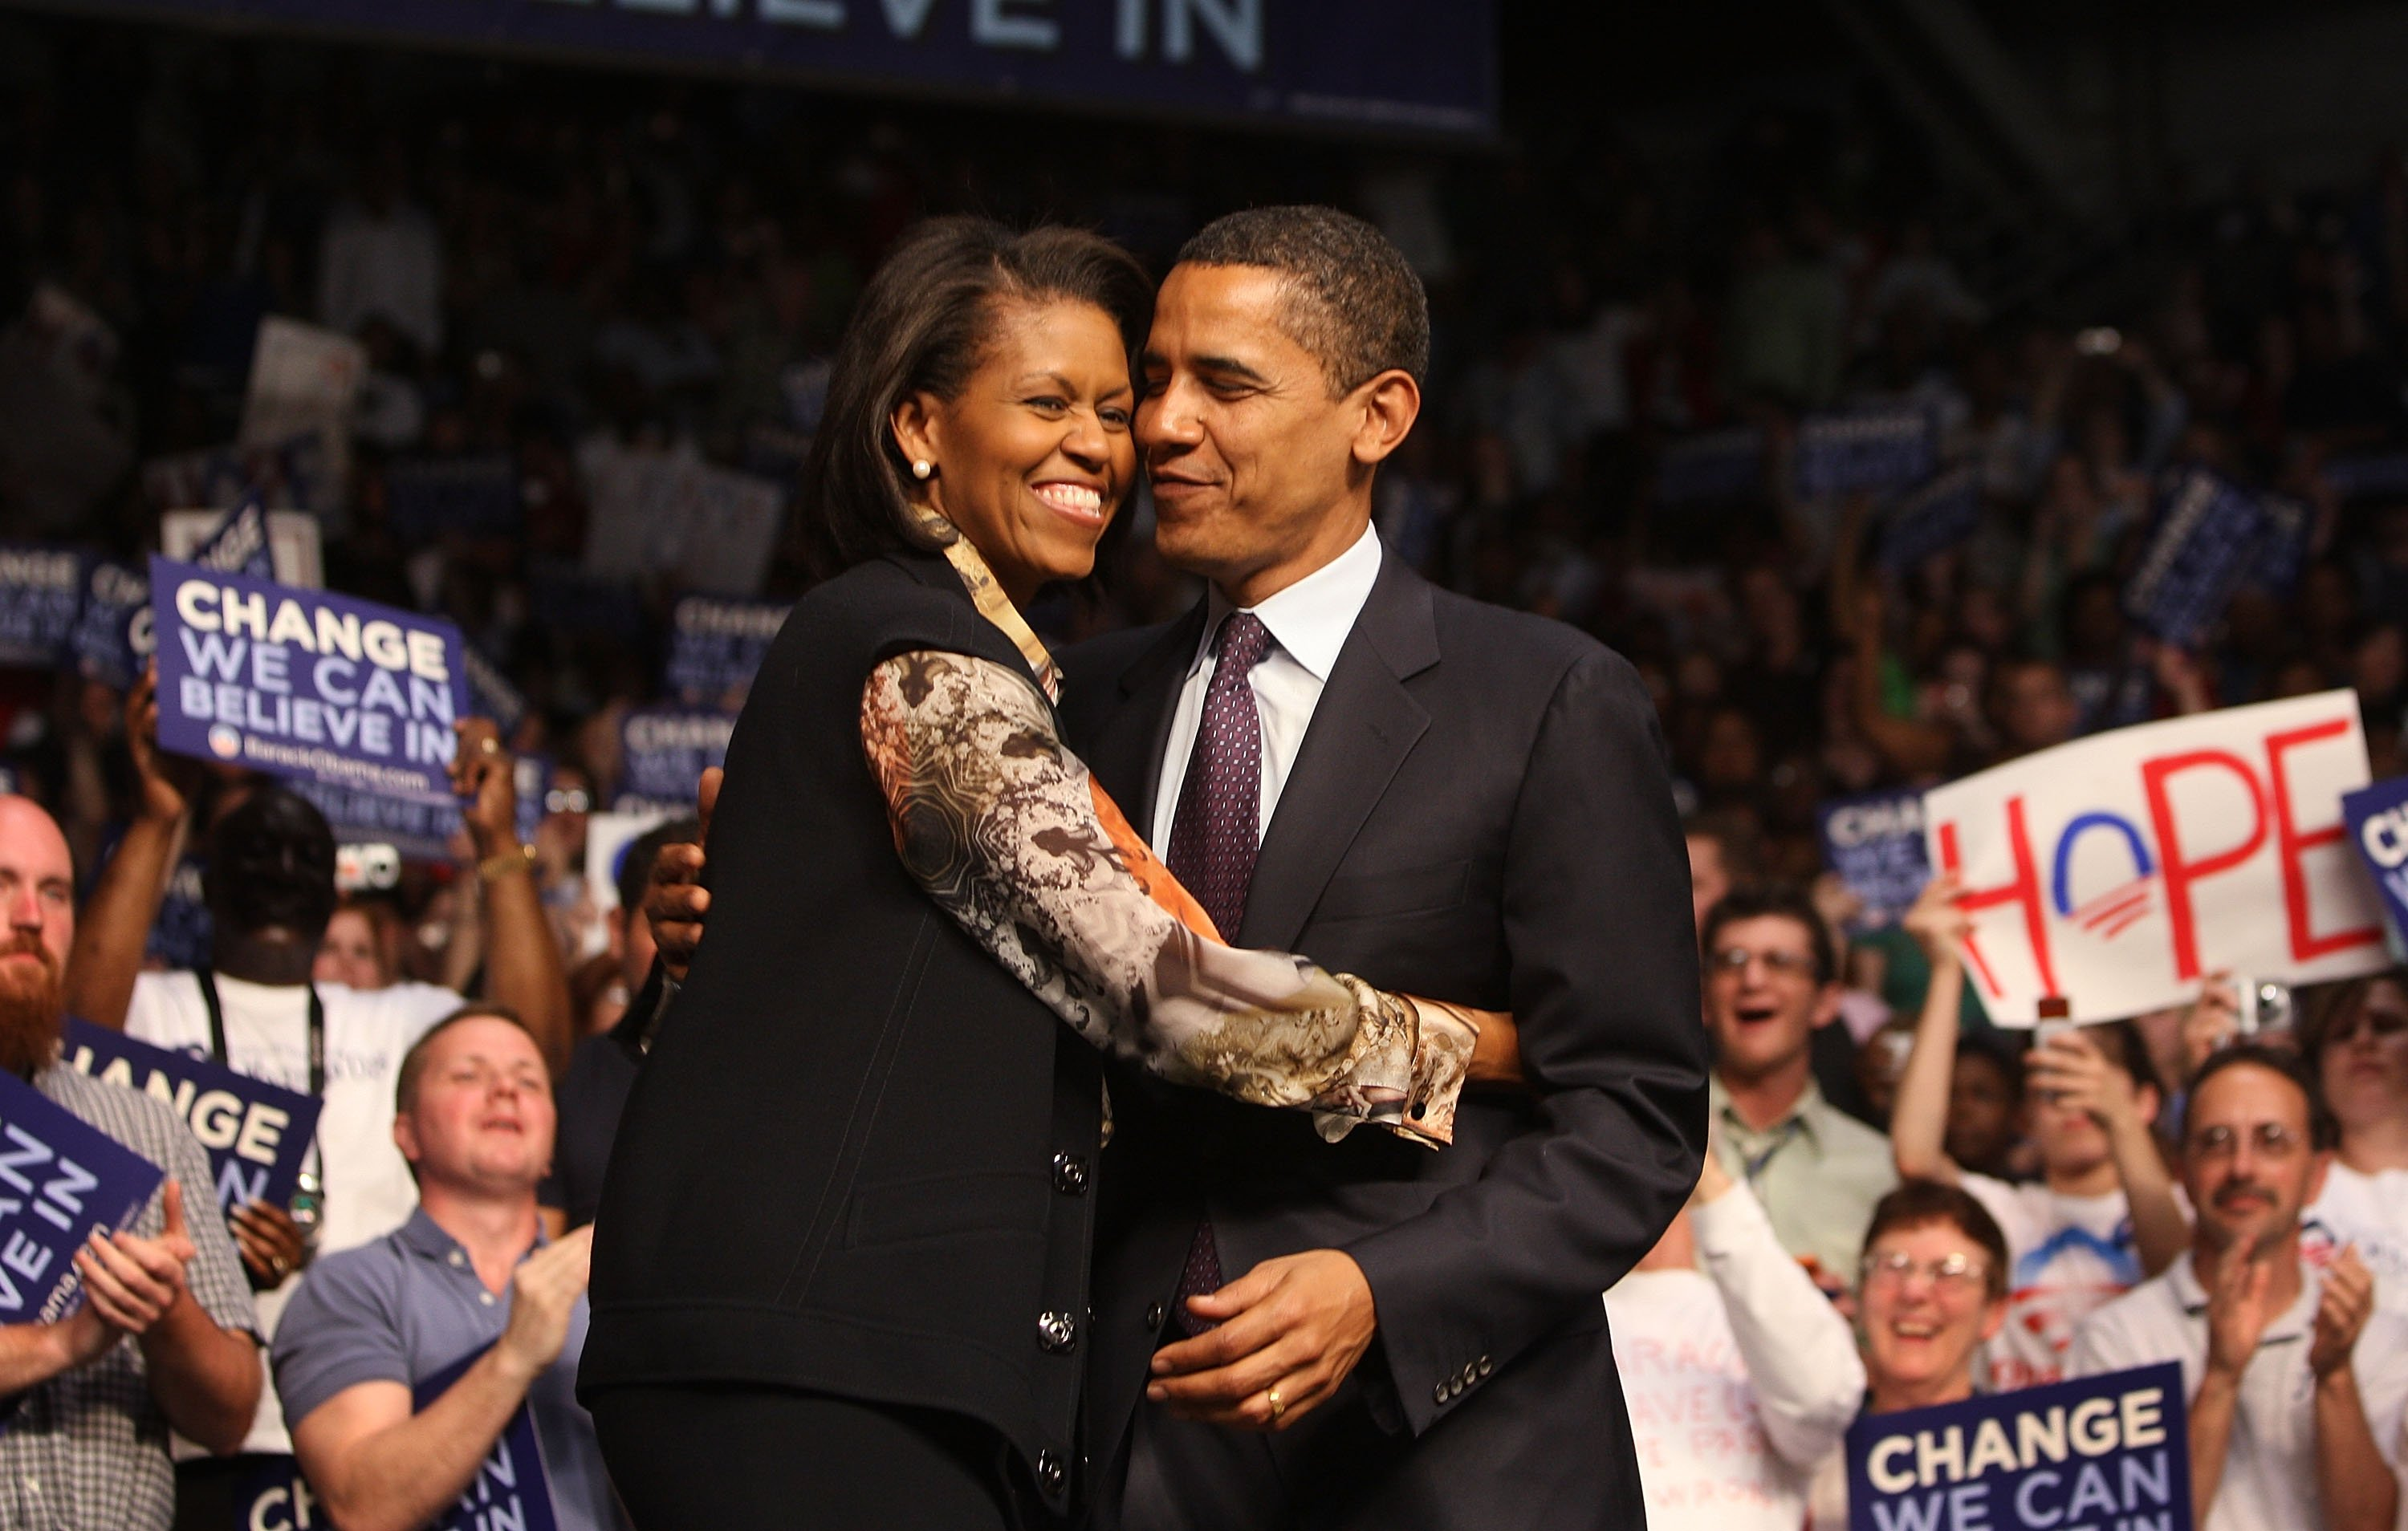 Barack Obama of Illinois and his wife Michelle Obama embrace at a rally April 22, 2008 in Evansville, Indiana. | Photo: GettyImages